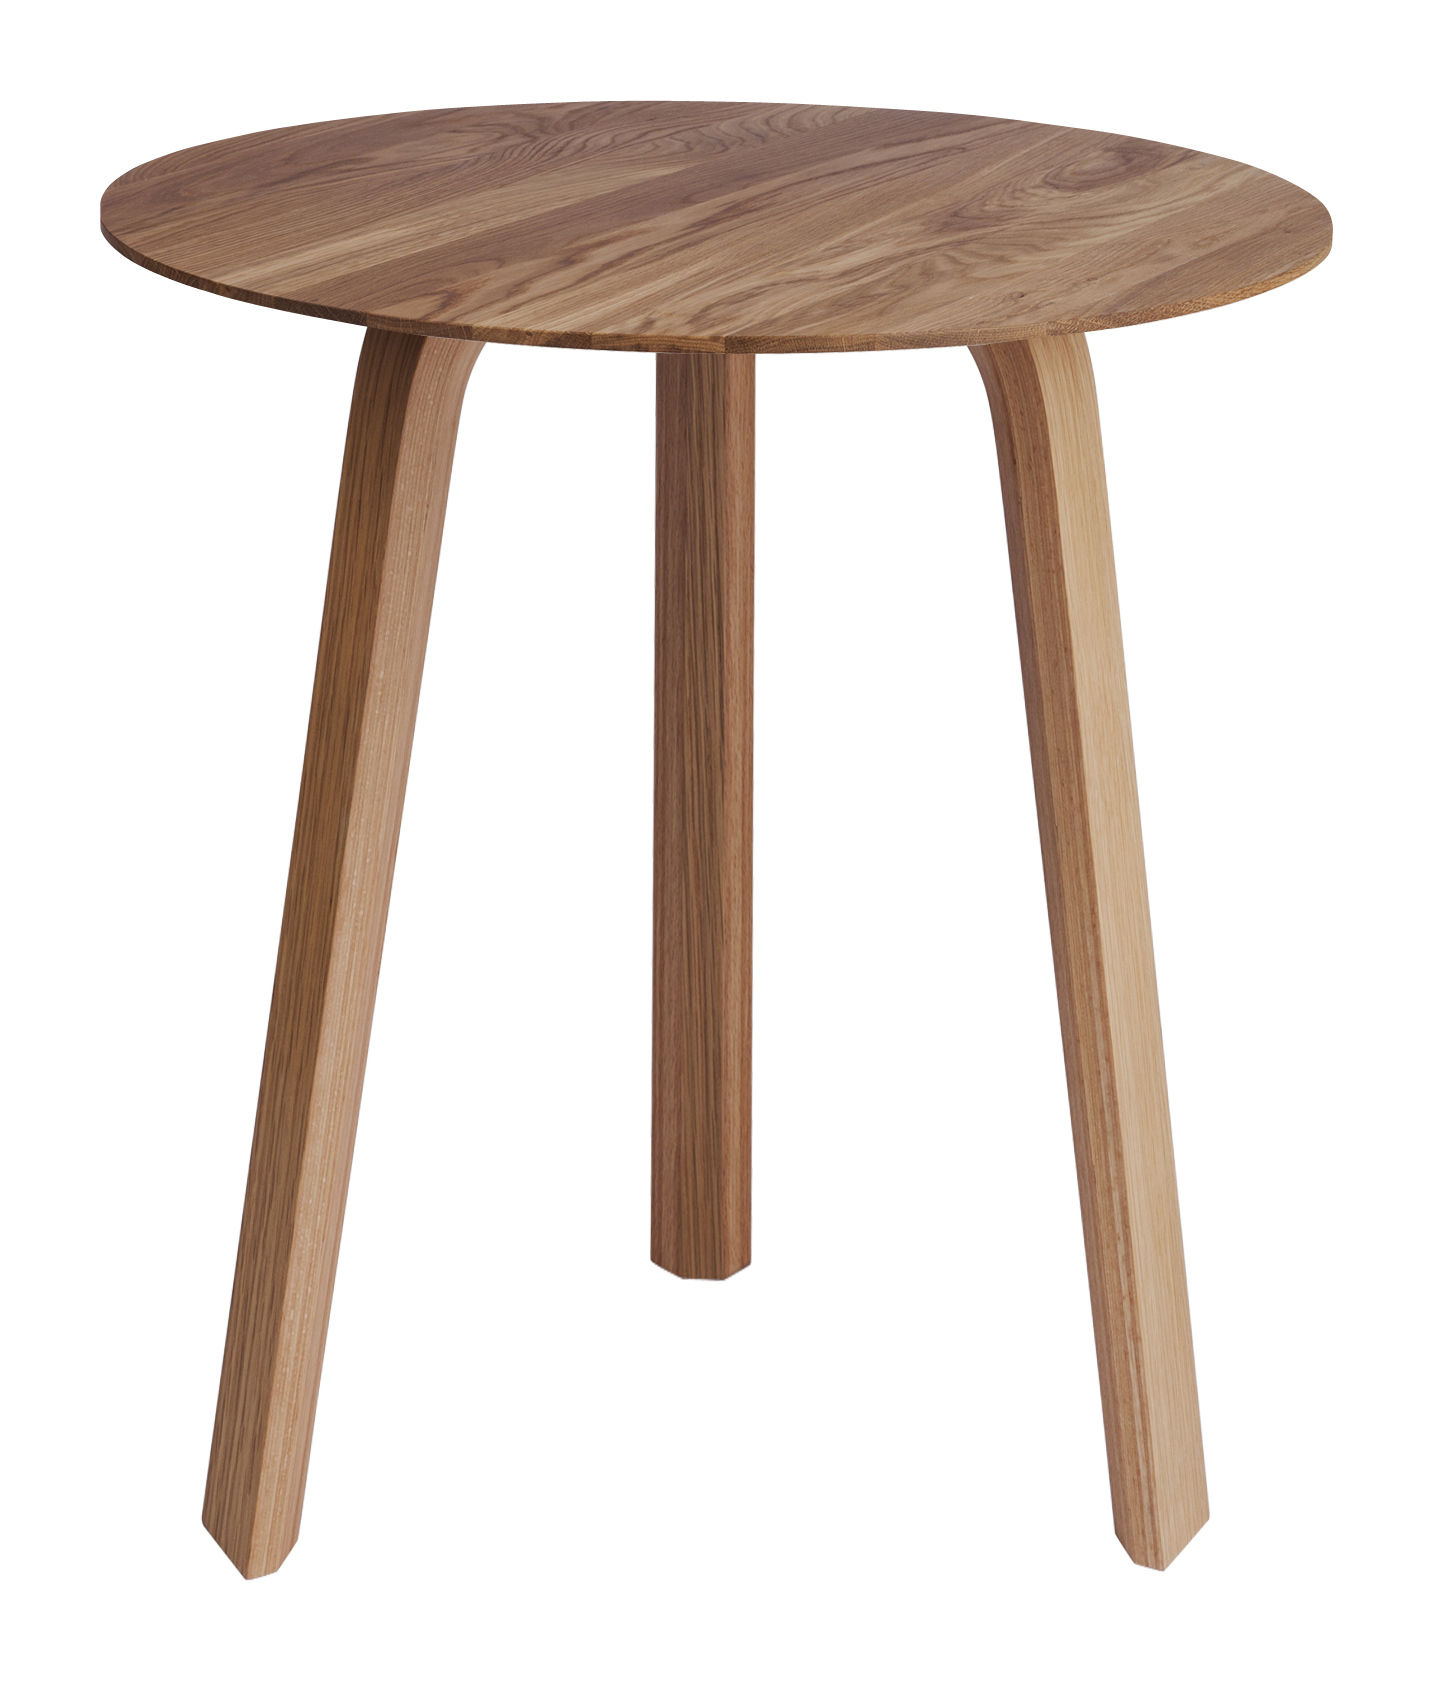 Furniture - Coffee Tables - Bella Coffee table - Ø 45 x H 49 cm by Hay - Natural oak - Oiled solid oak